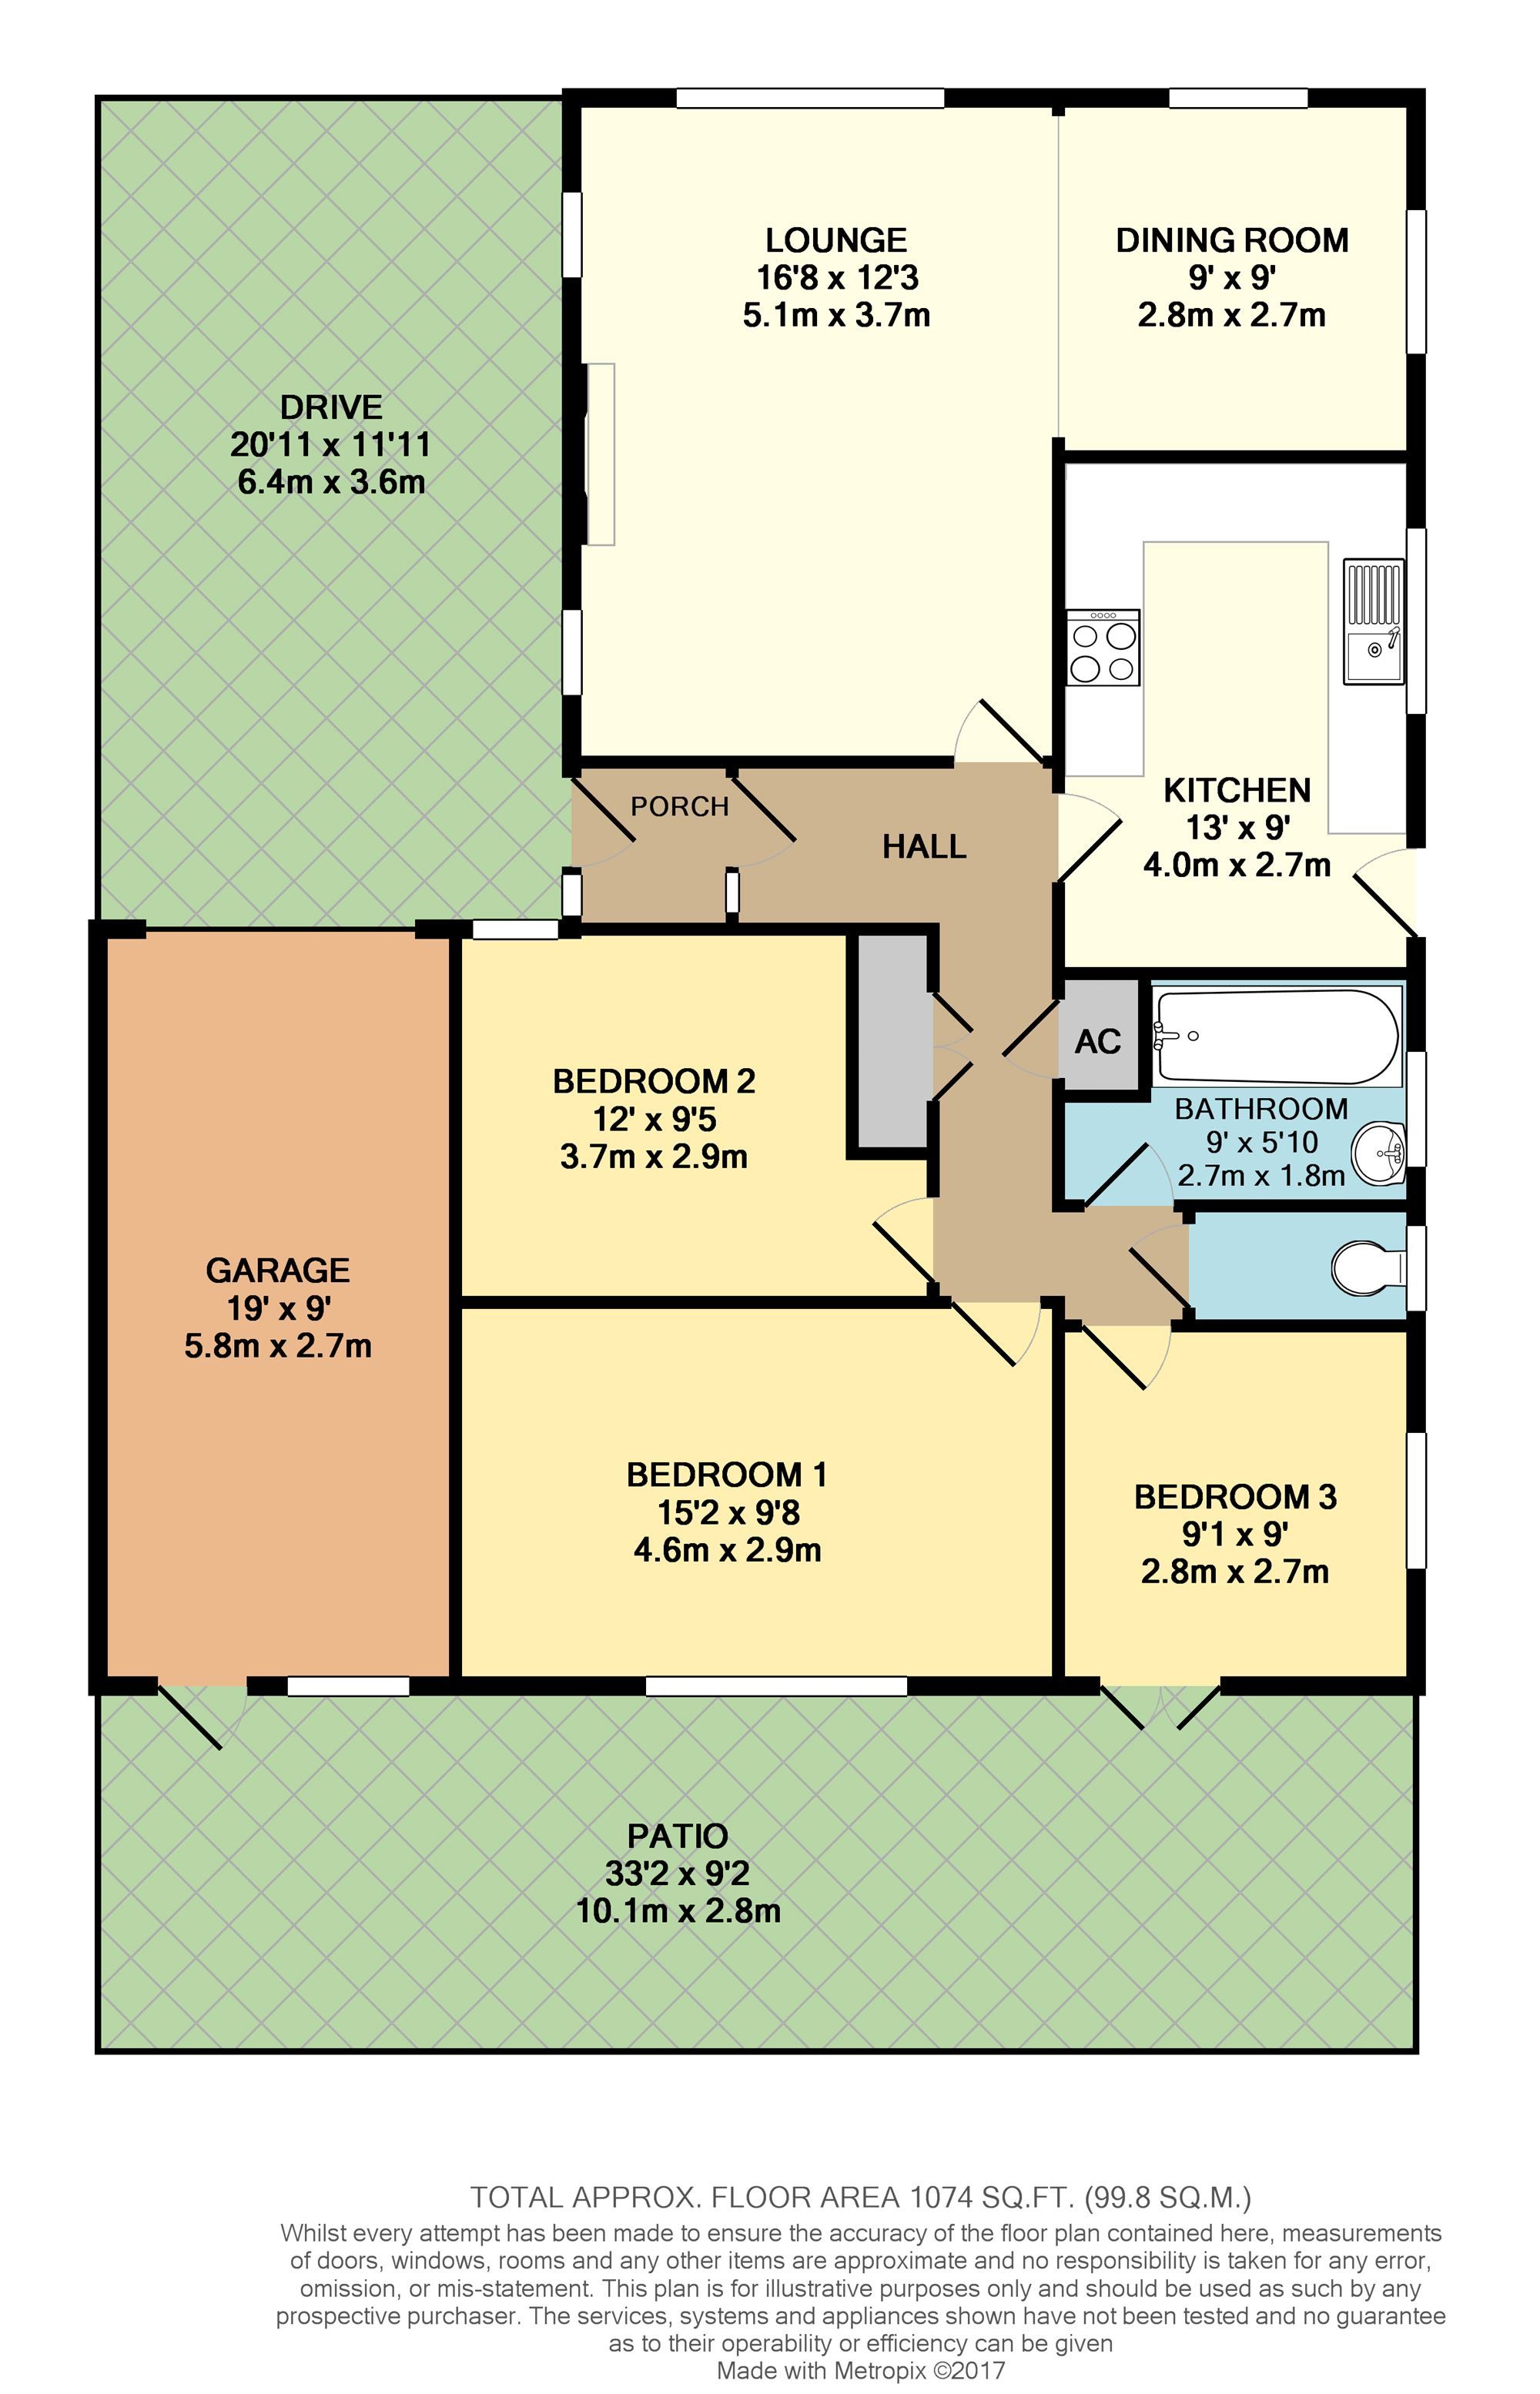 Floorplan of property at St Peters Crescent